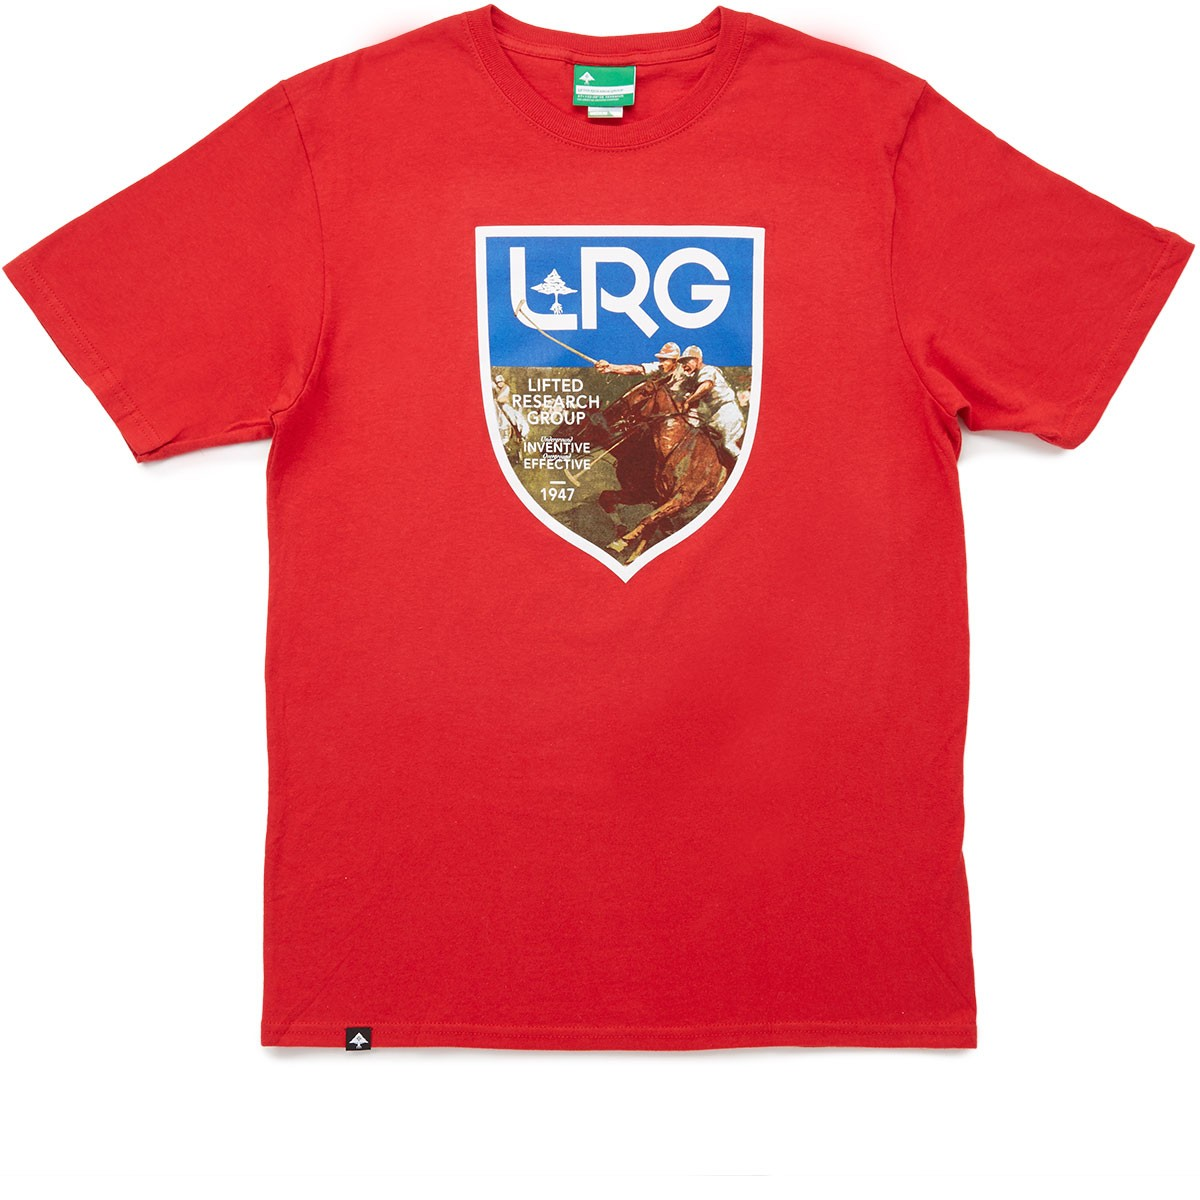 LRG Fare Game T-Shirt - Red